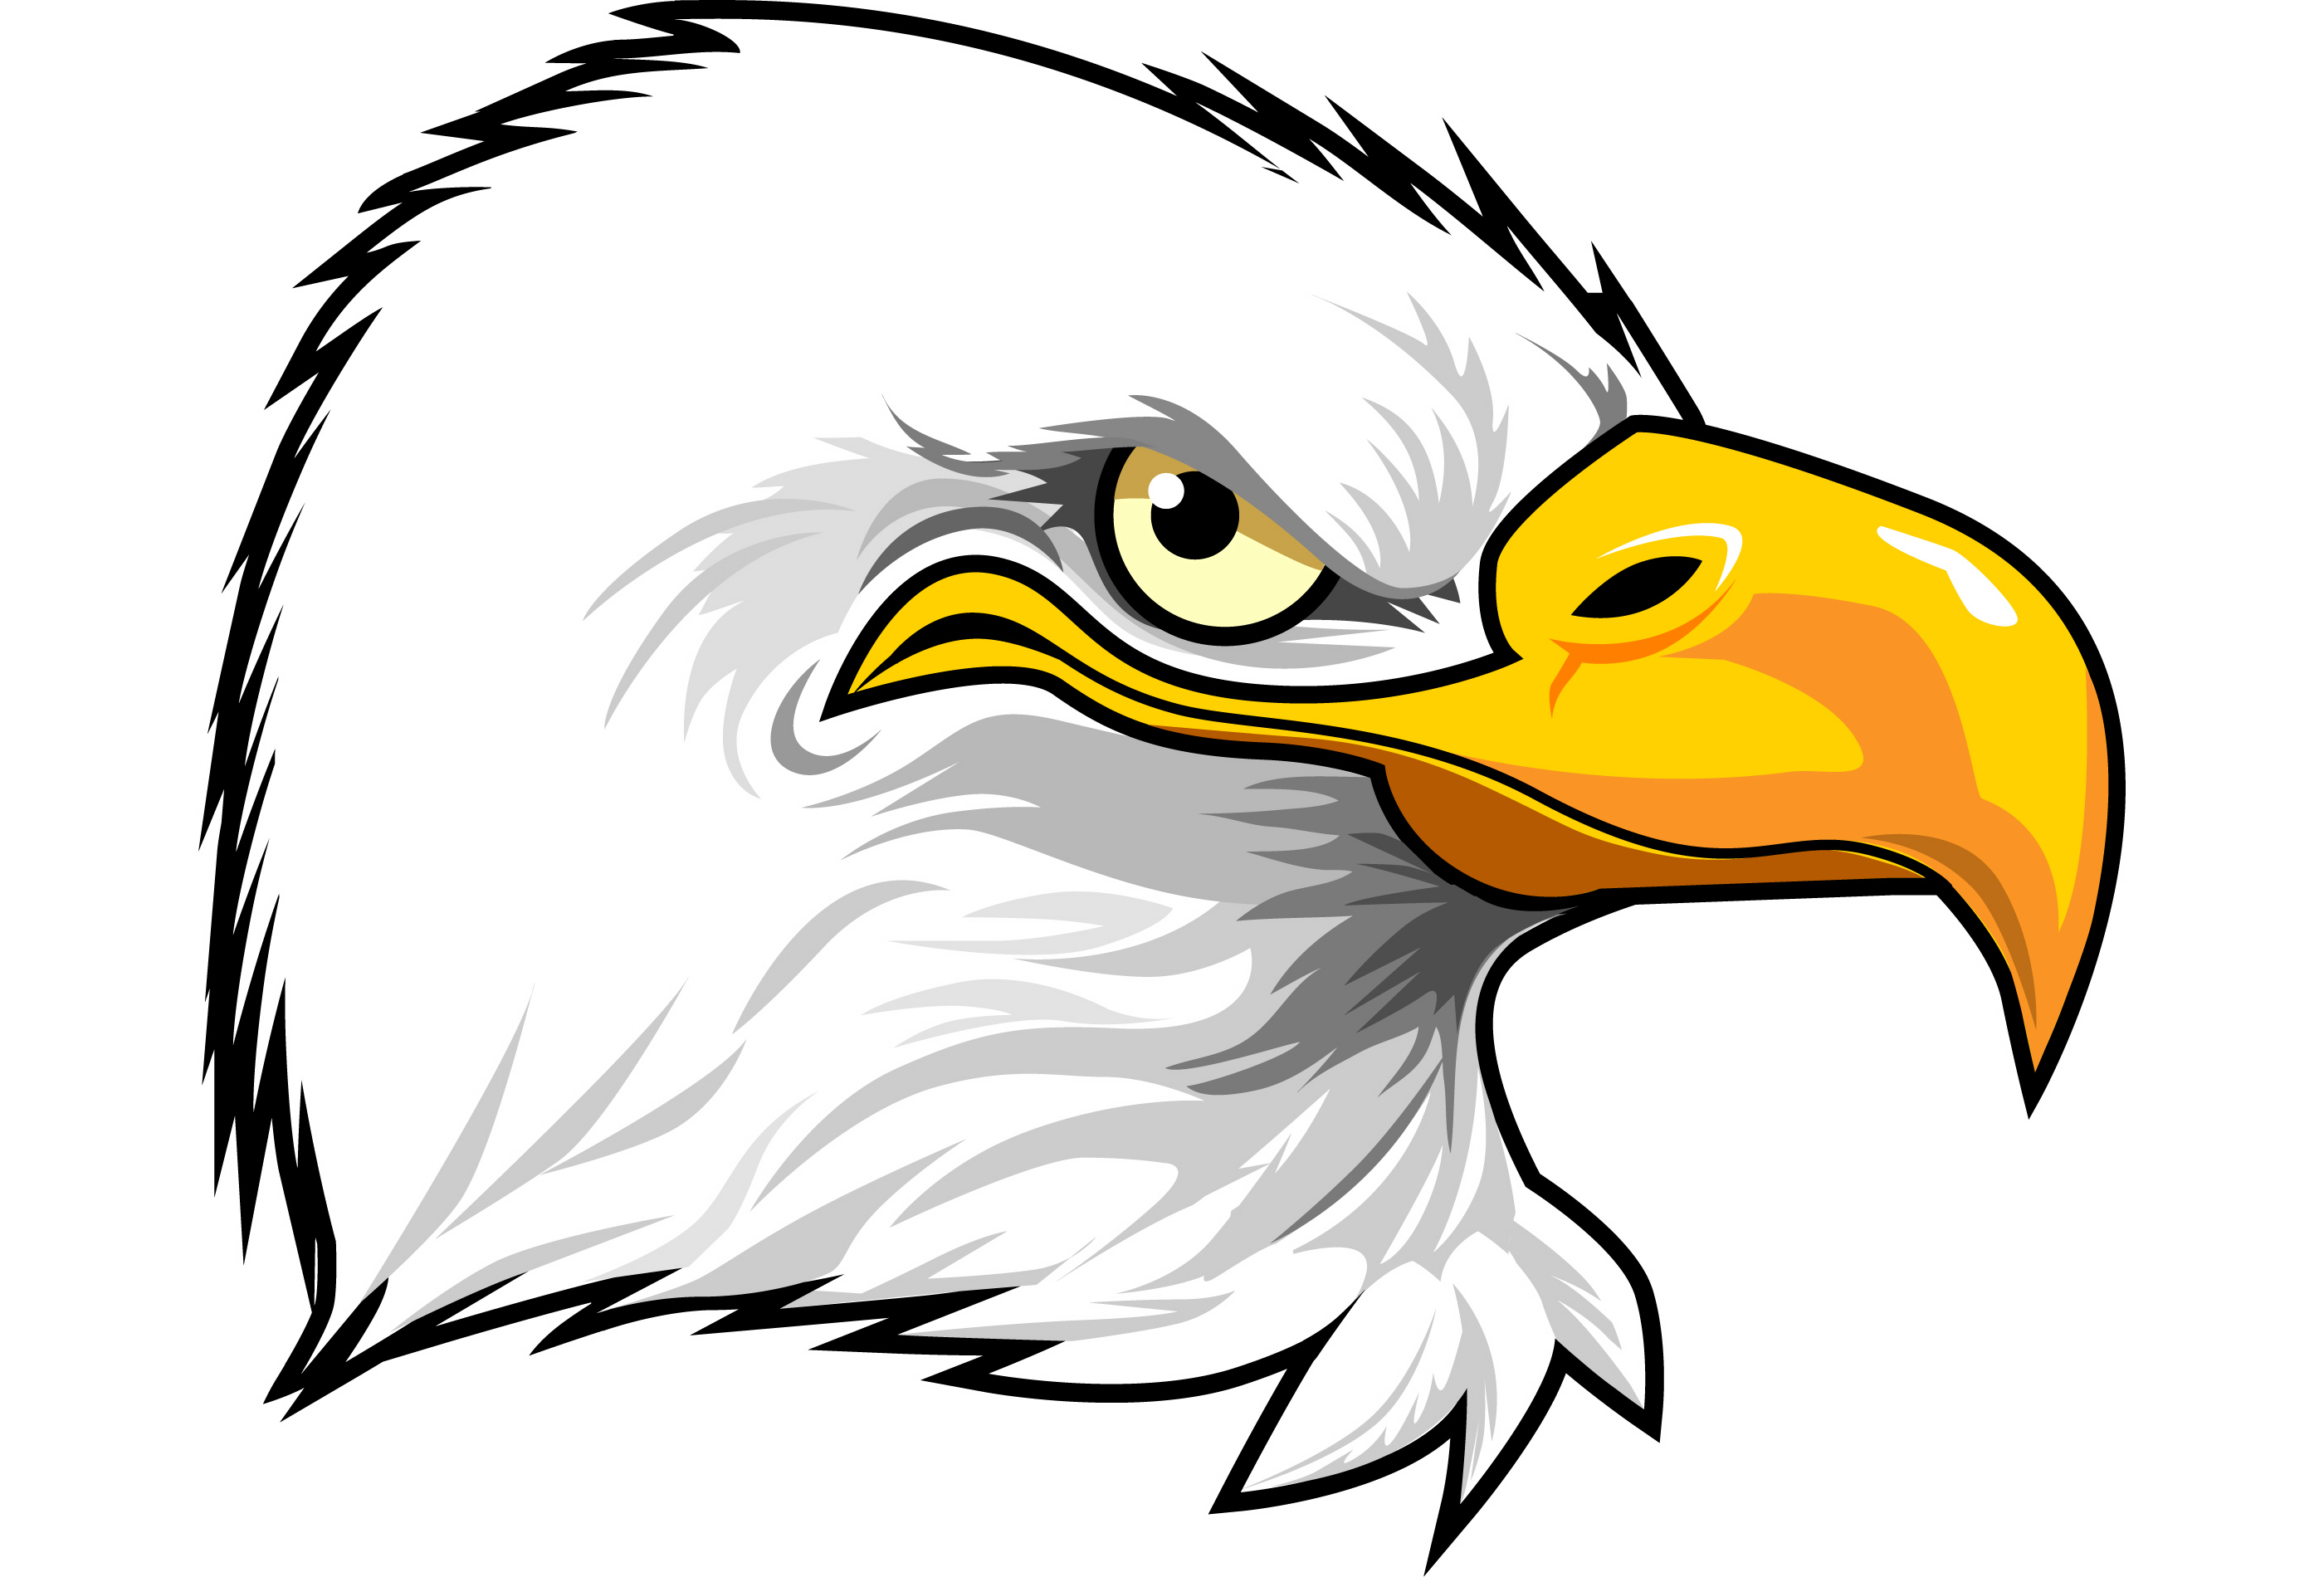 Animated Bald Eagle Pictures - ClipArt Best